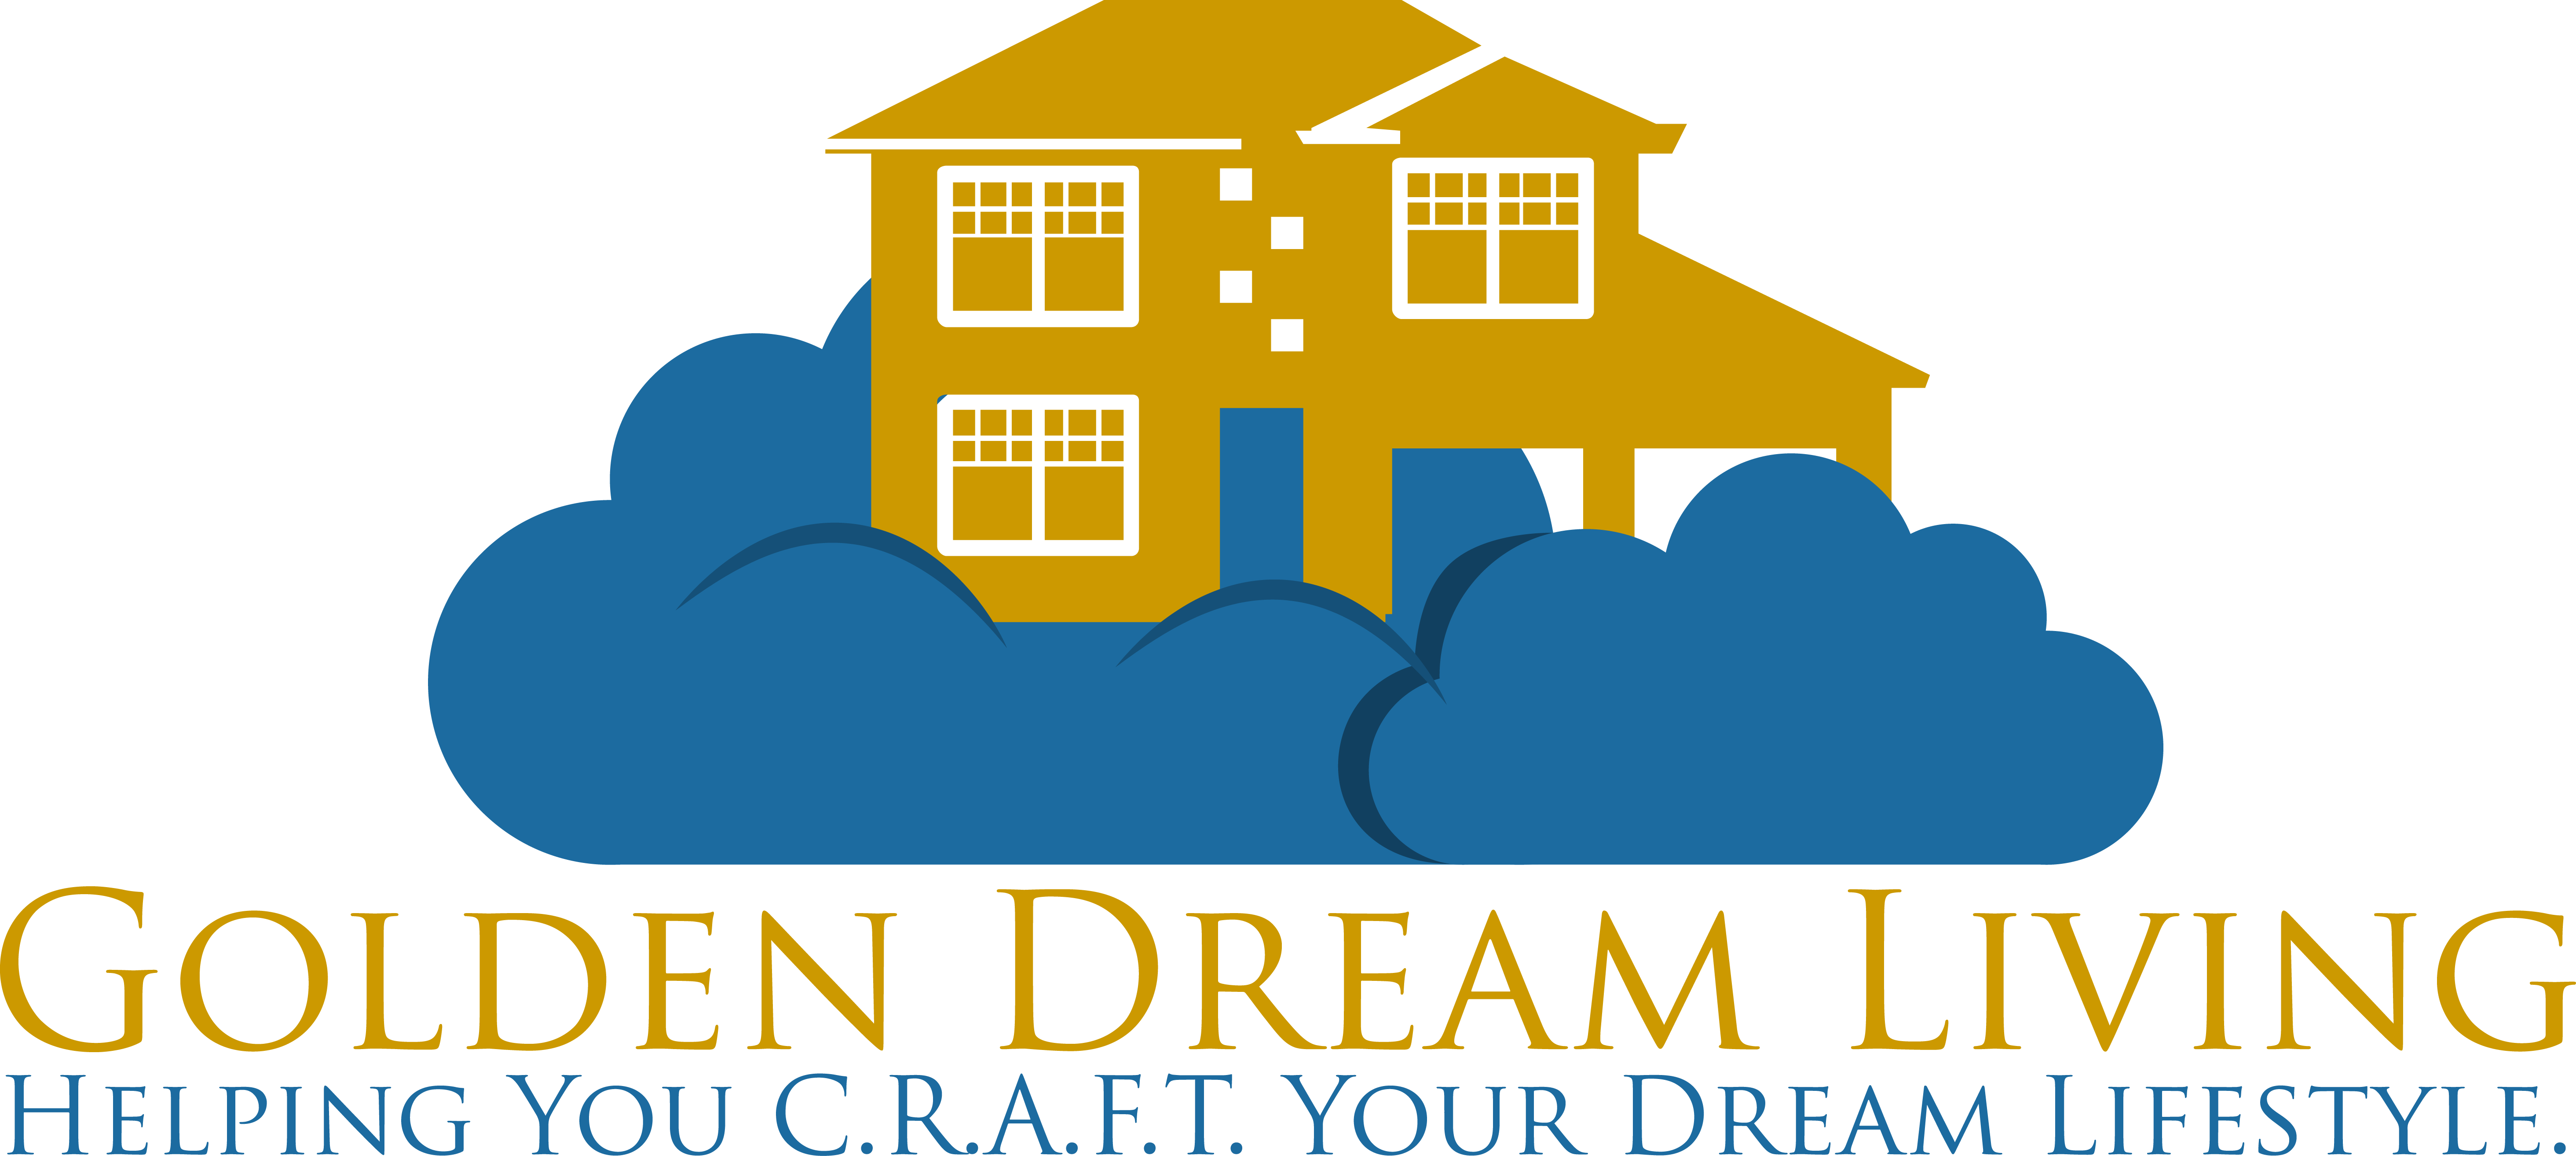 Golden dream living helping. Patient clipart retirement home